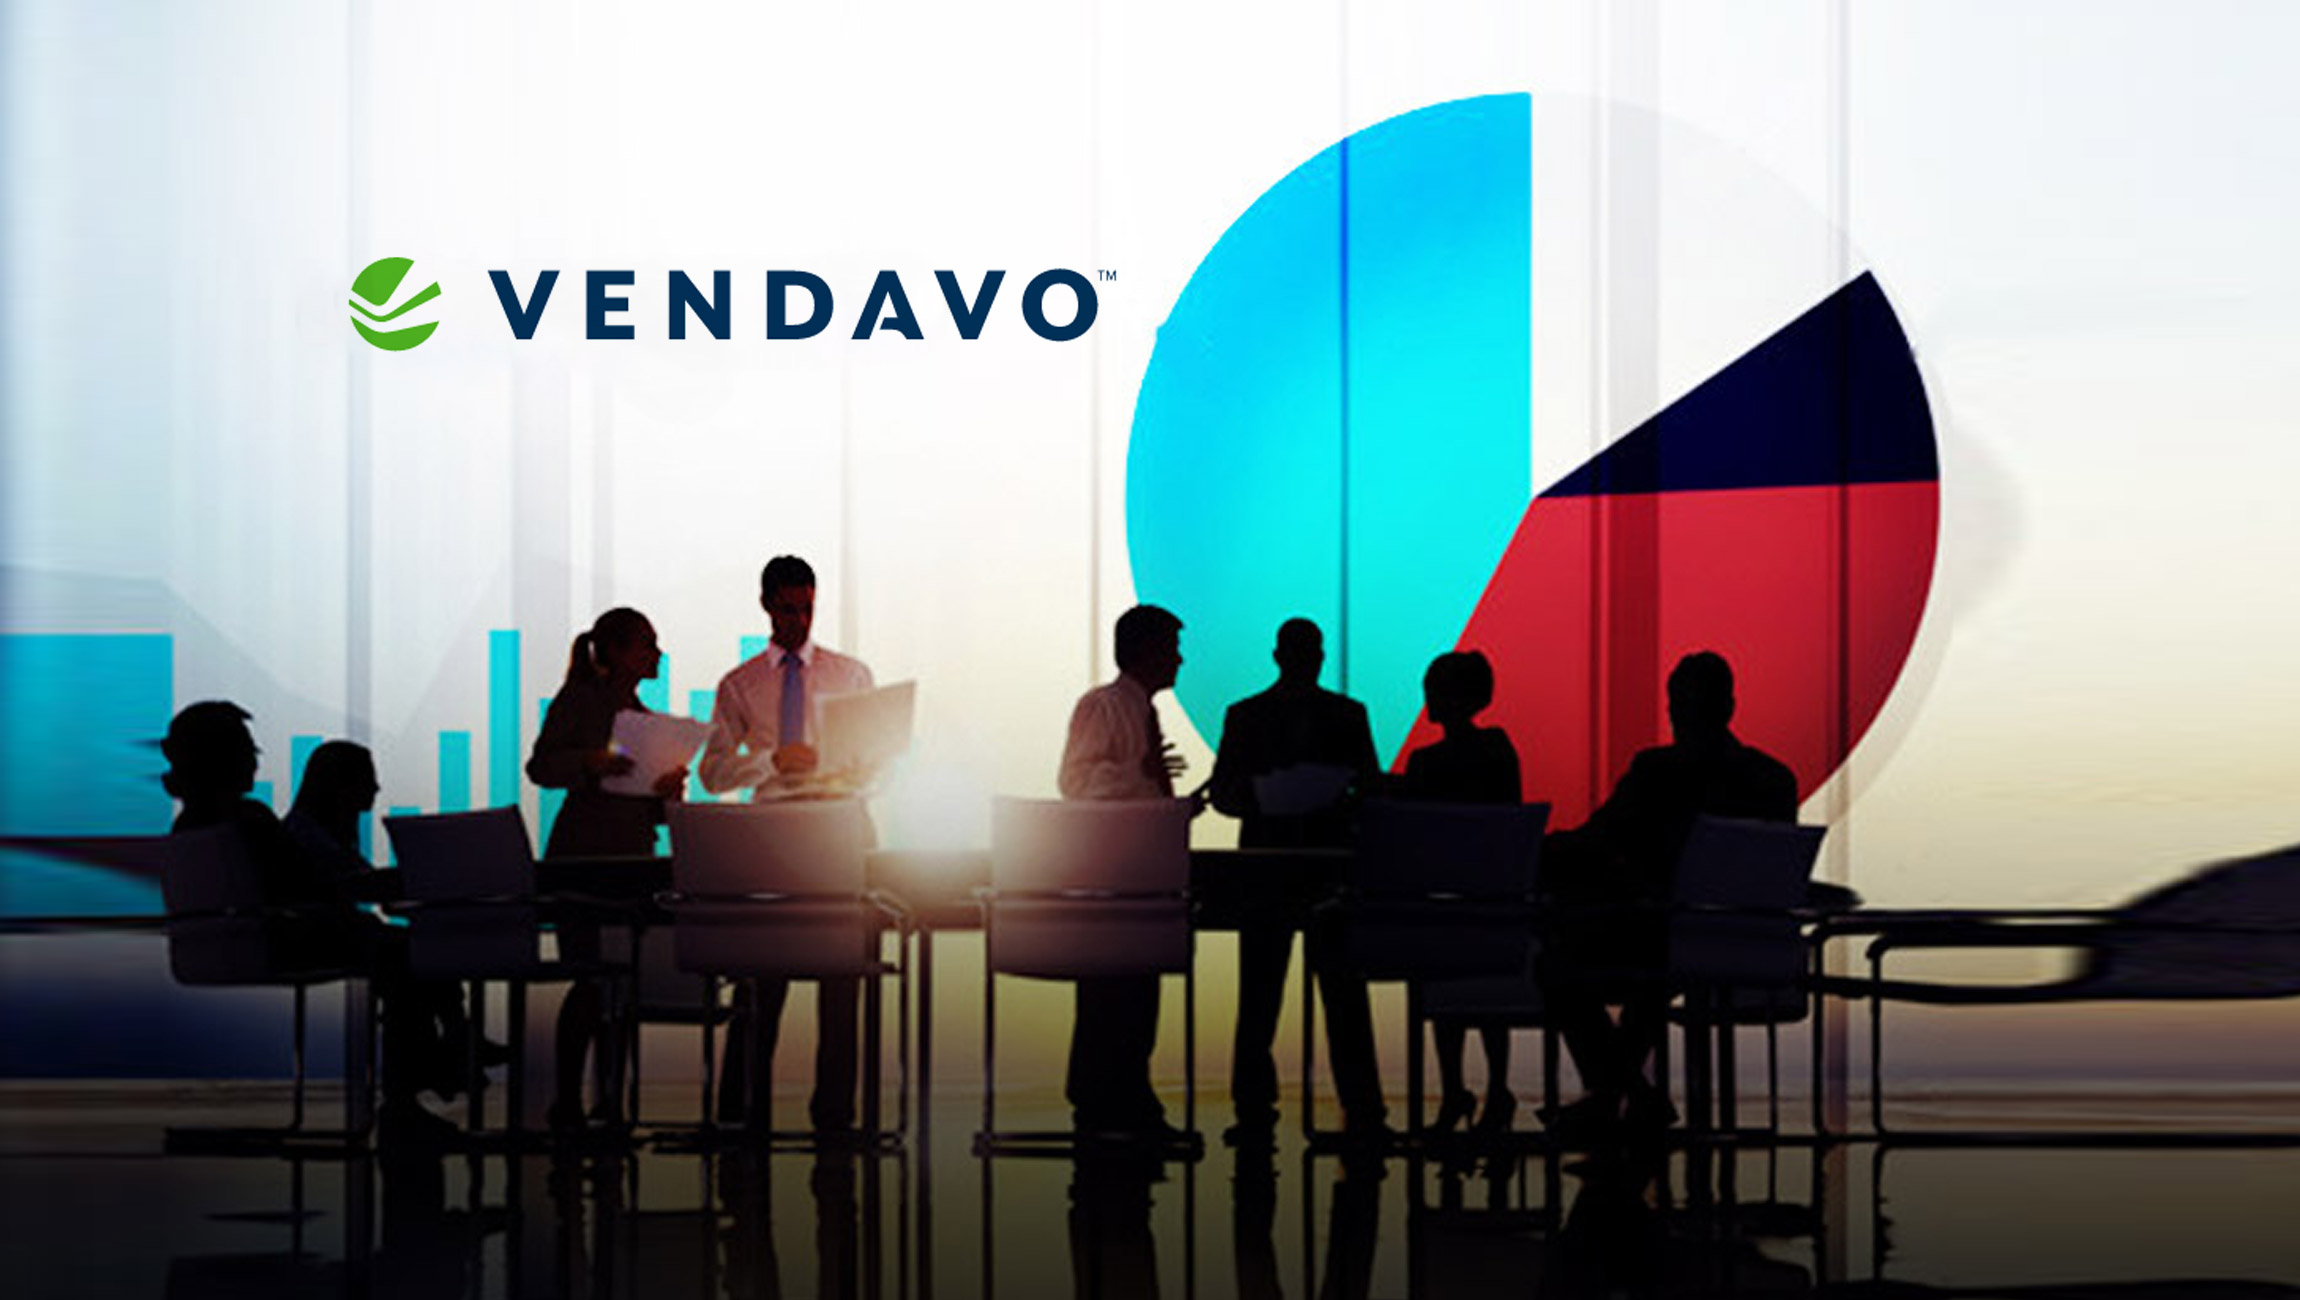 Vendavo-Secures-Strategic-Investment-to-Accelerate-Growth